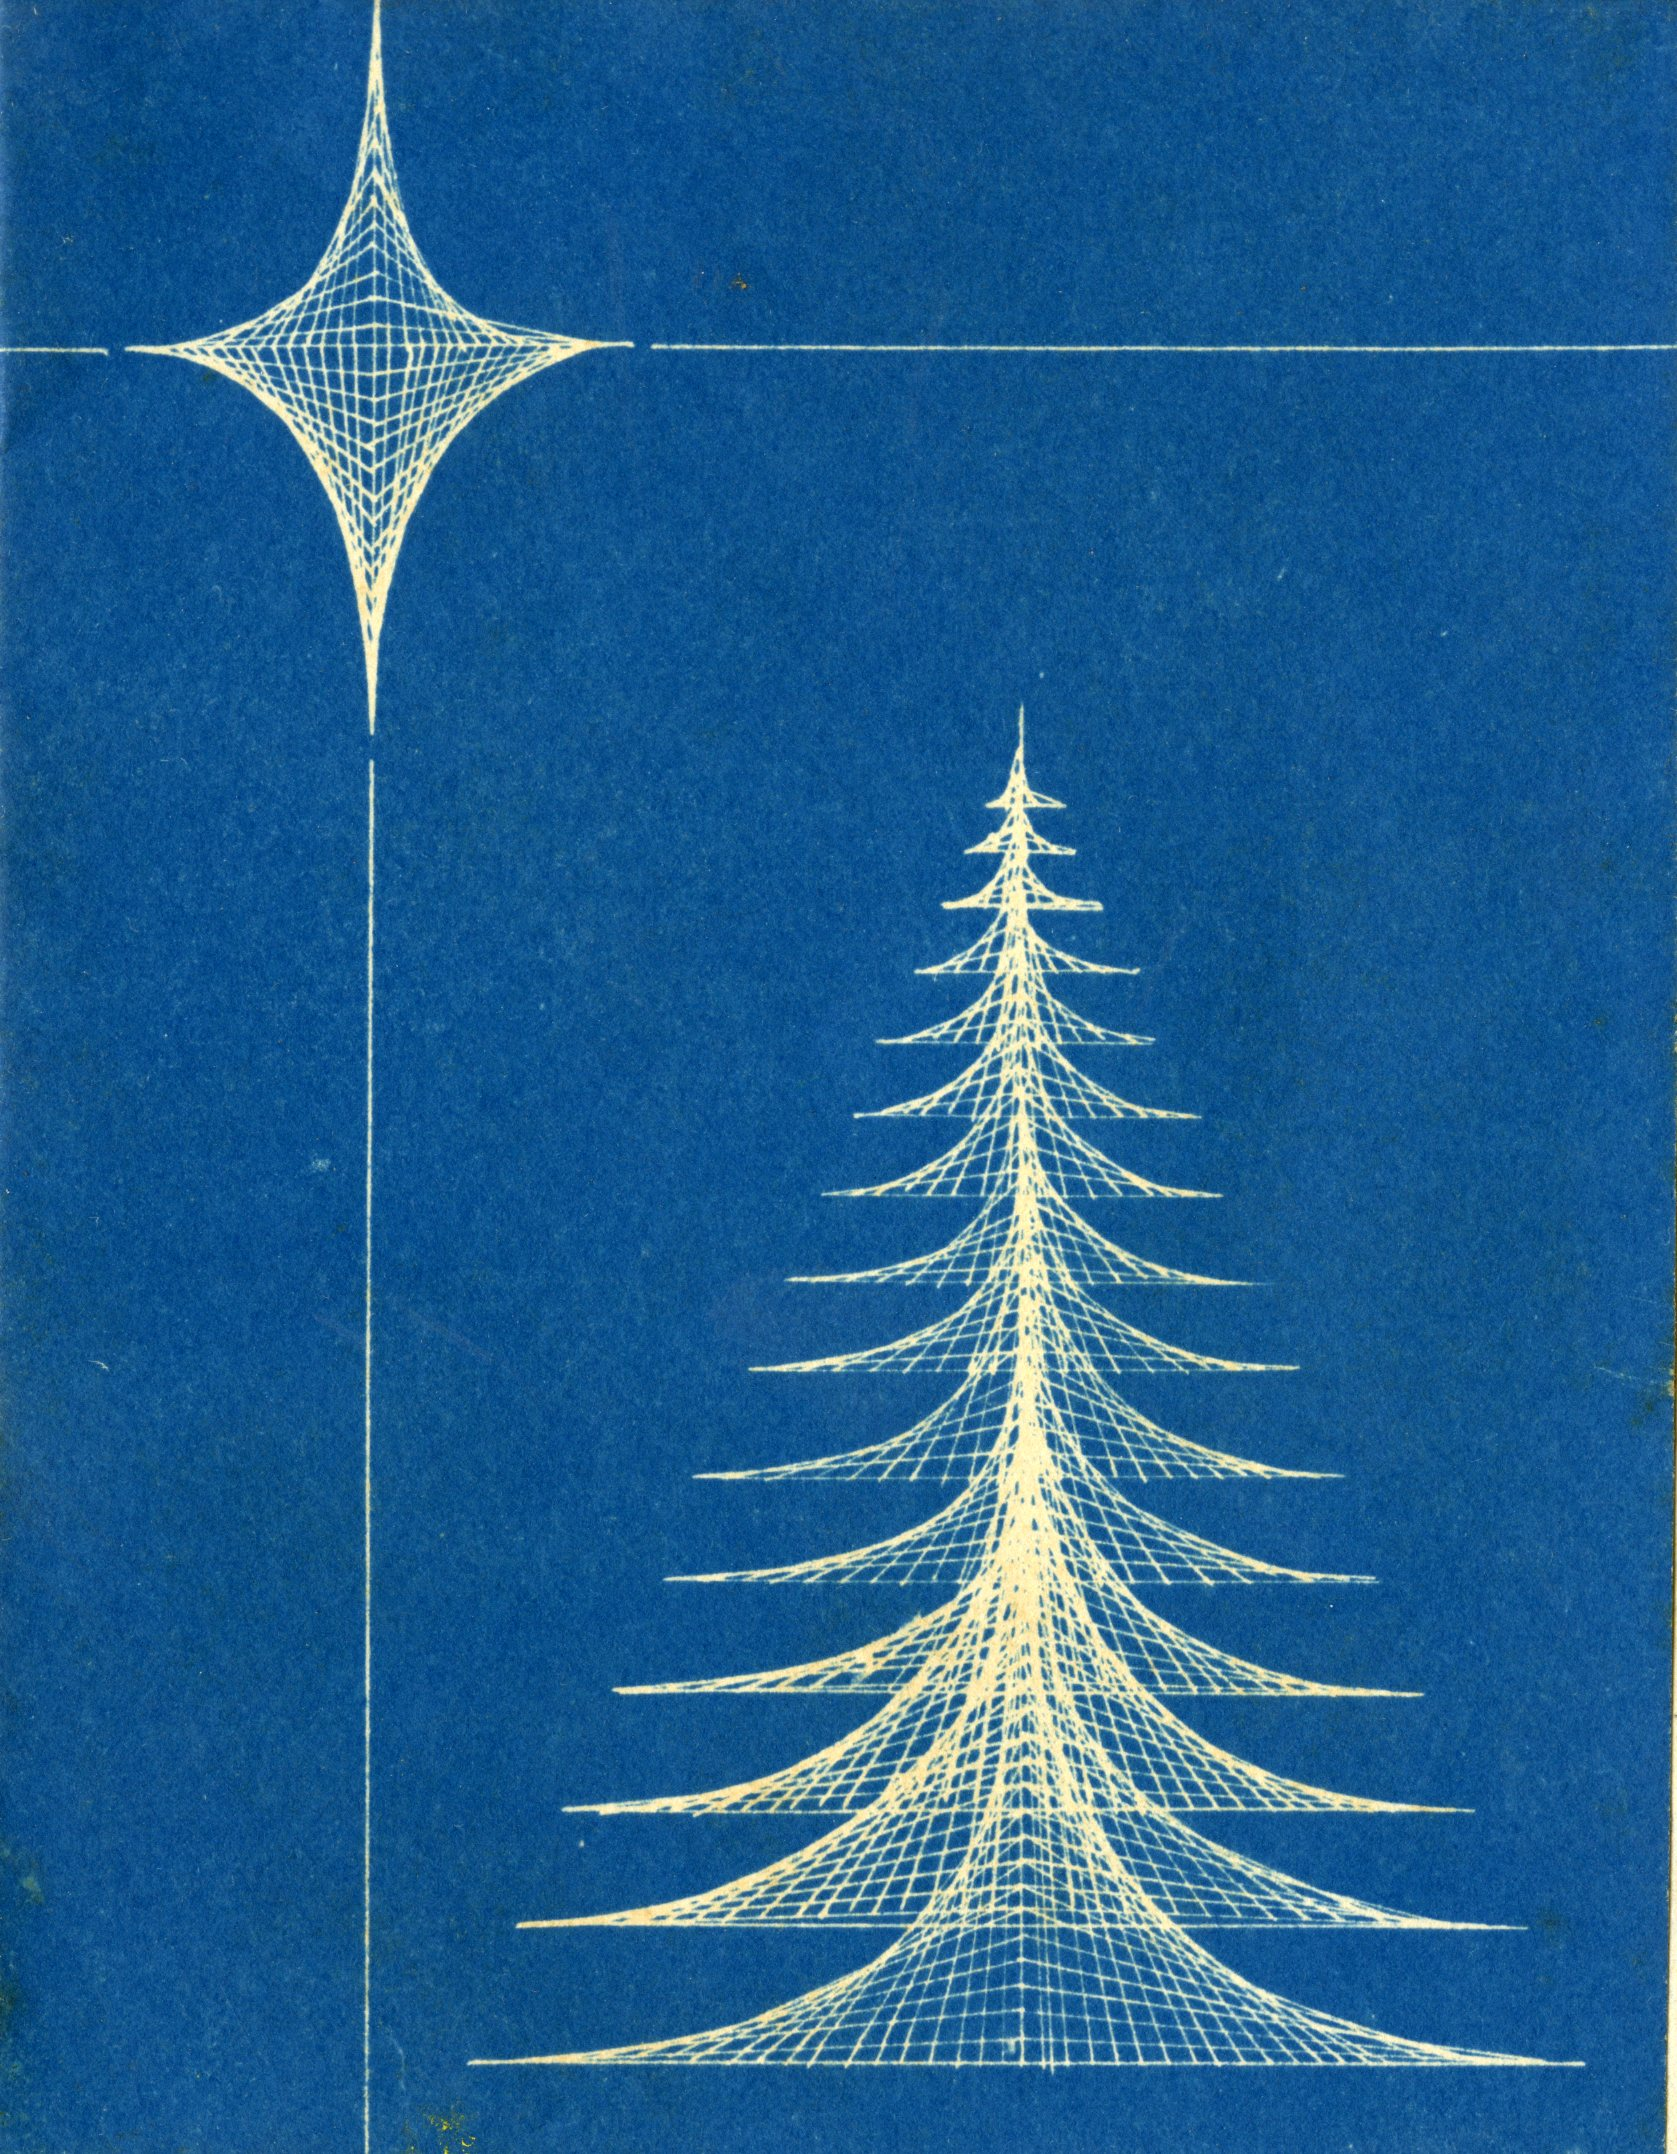 christmas ive come across two nice holiday cards sent out by the rice school of architecture the first one is undated but seems from context to be